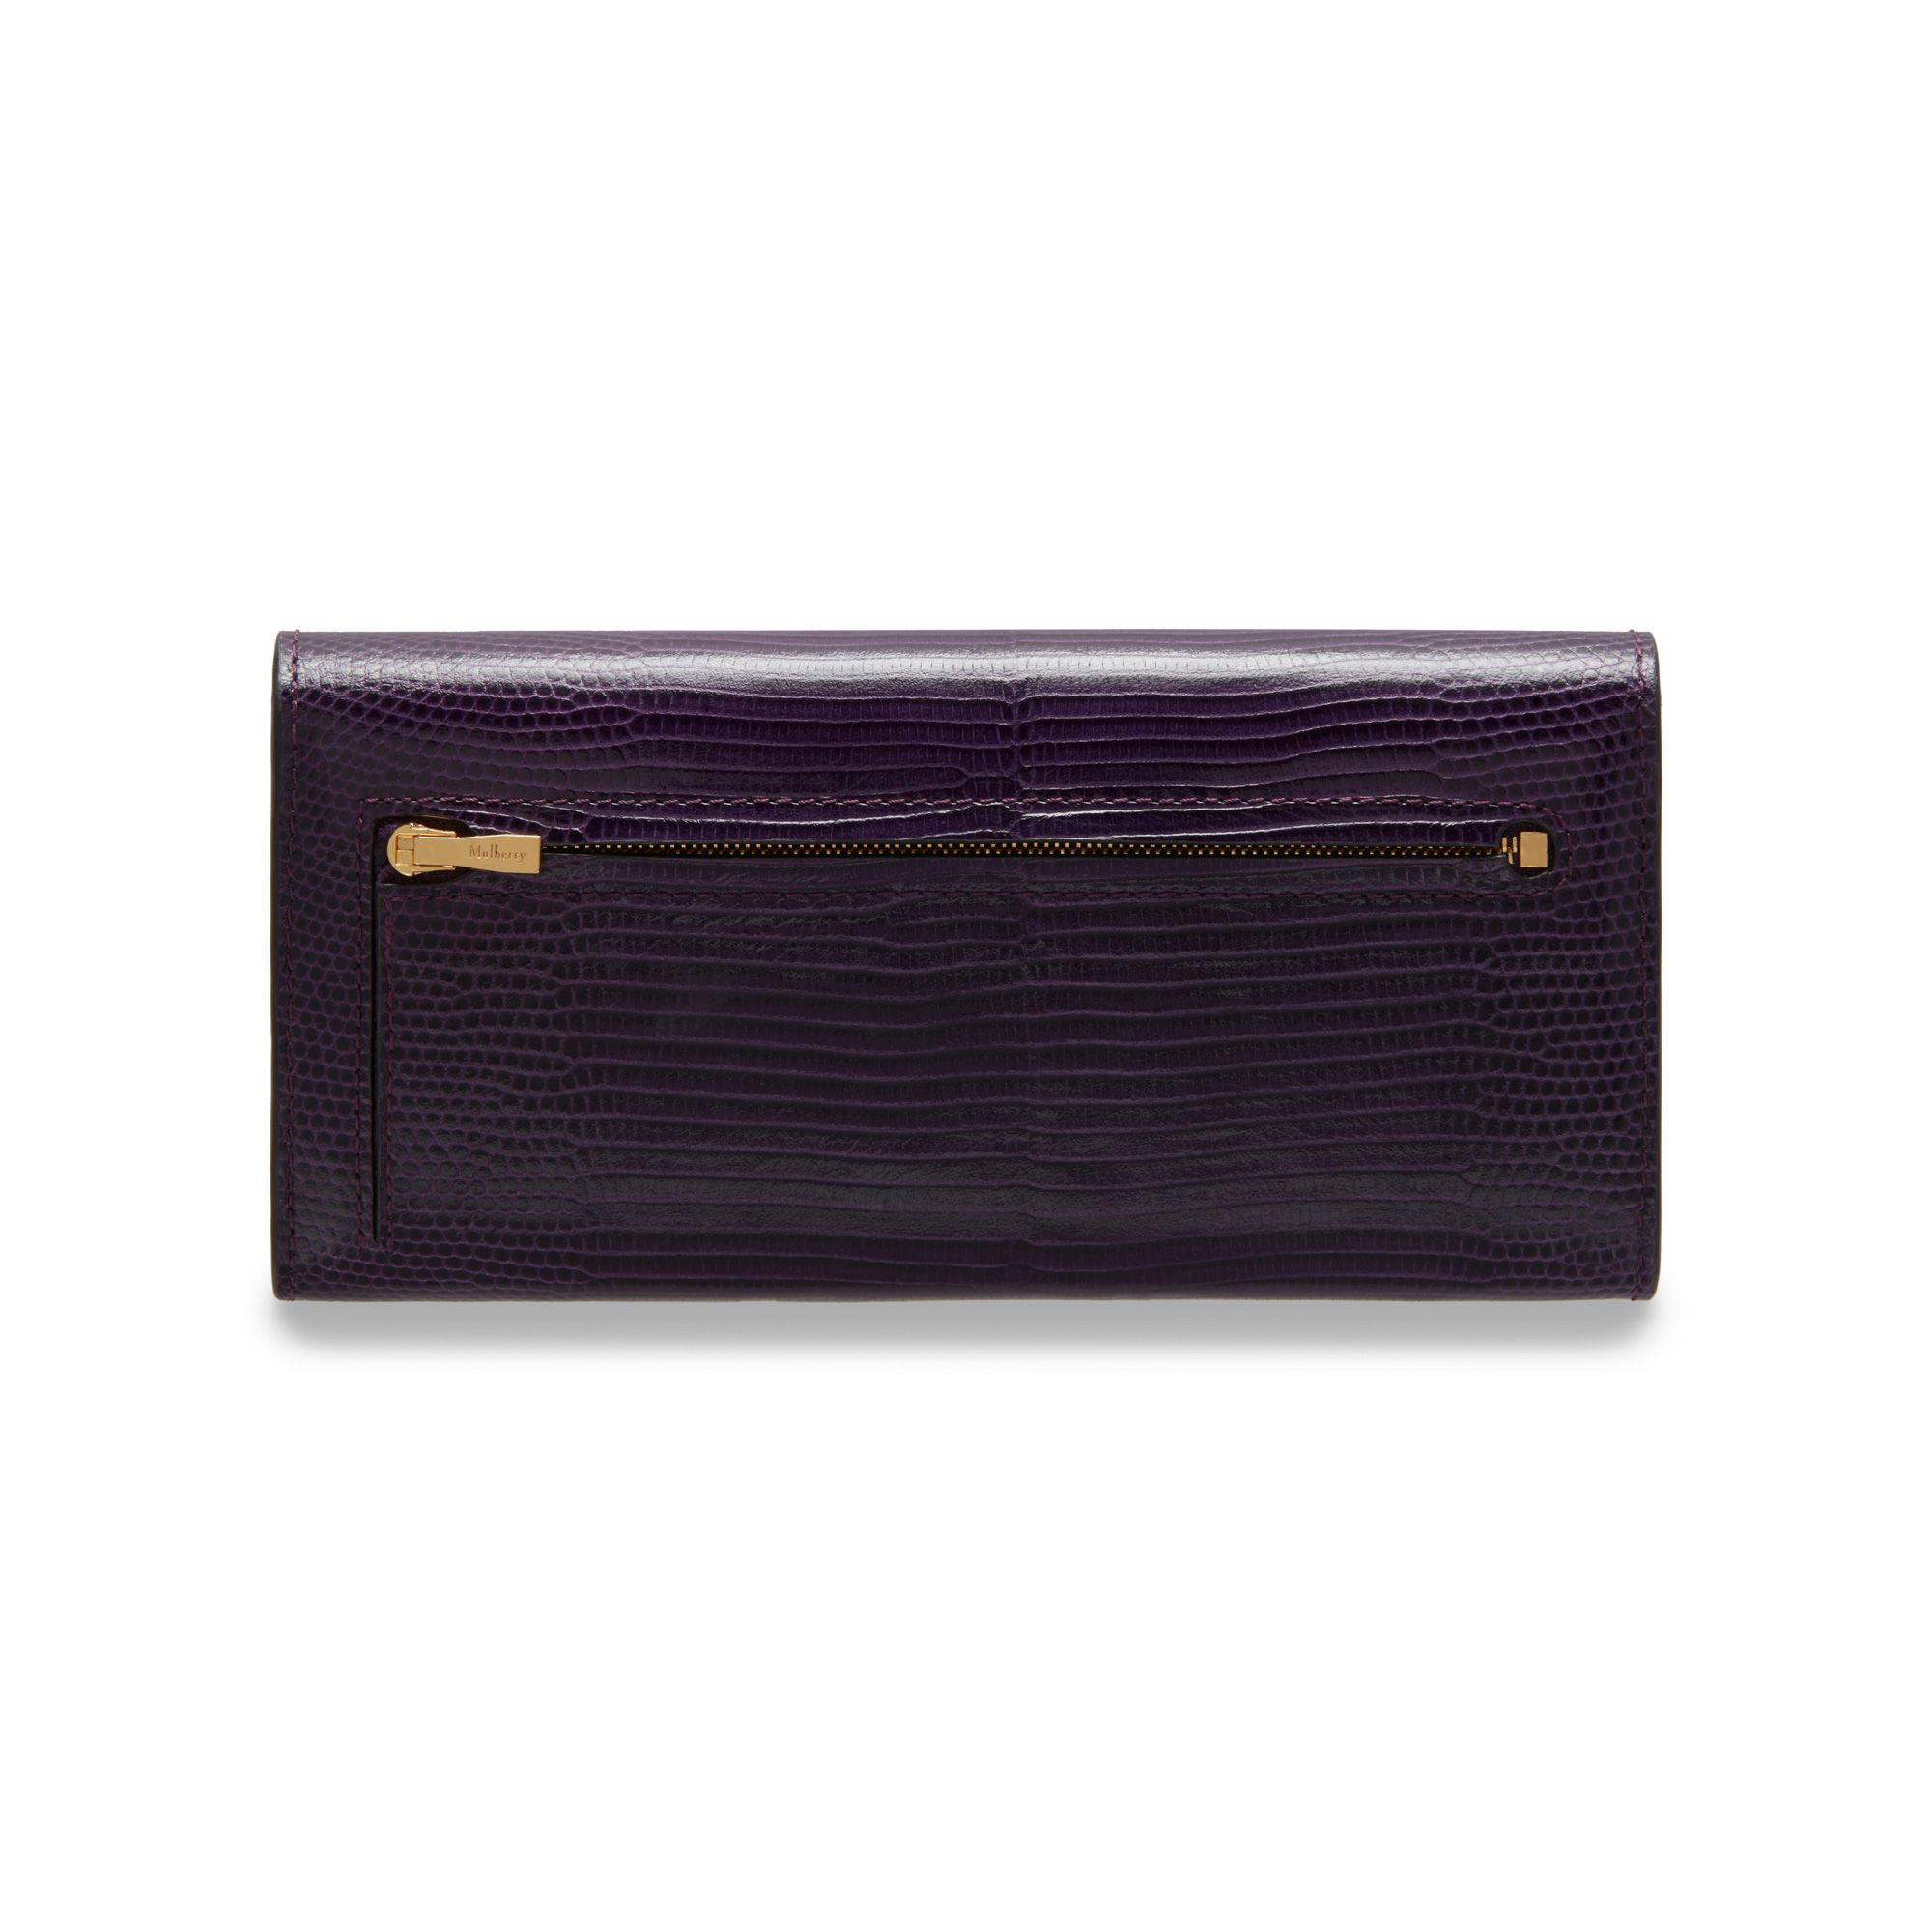 COMING SOON MULBERRY ENGLAND_f0111683_14201973.jpg